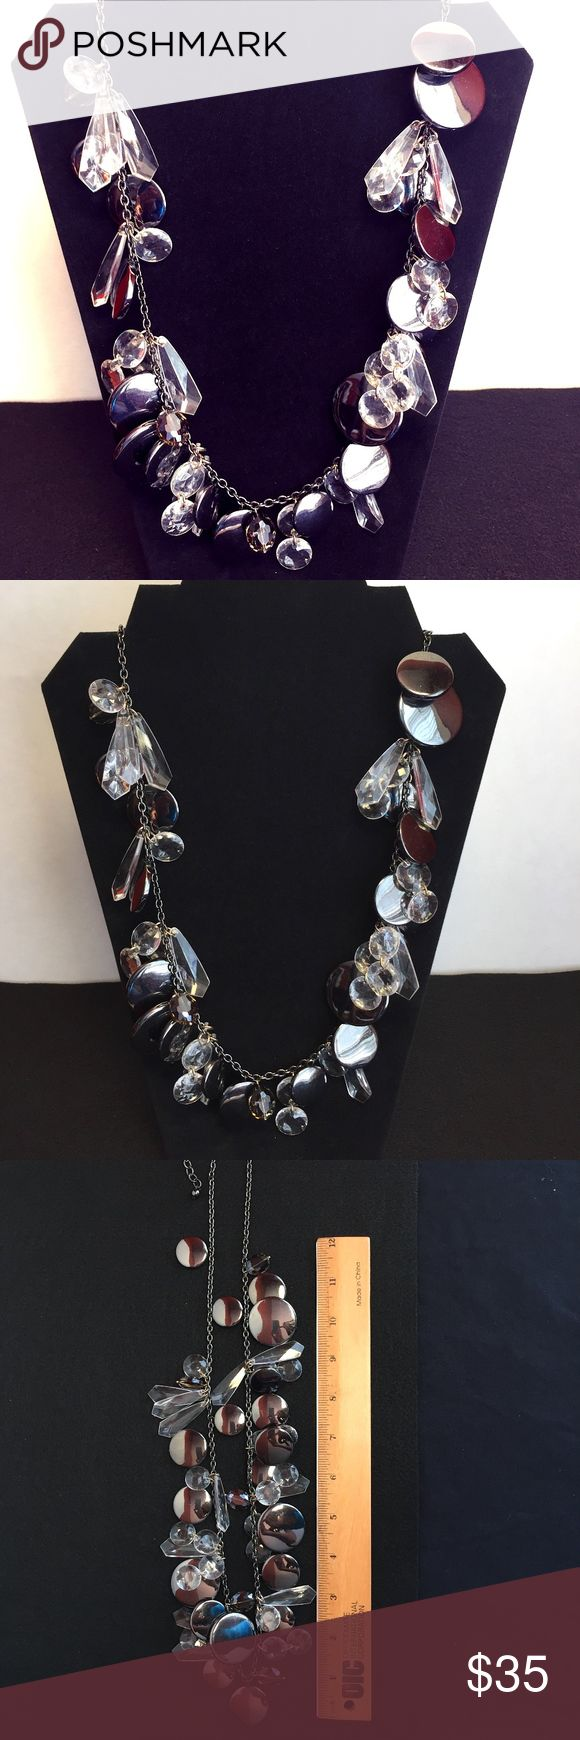 """Joan Rivers Faceted Chunky Statement Necklace From Joan Rivers Classics Collection! Includes a signed Joan Rivers charm. Go for all-out gorgeous by finishing your look with this stunning necklace!  Necklace measures 35"""". Joan Rivers Jewelry Necklaces #classicalvintagejewelry"""